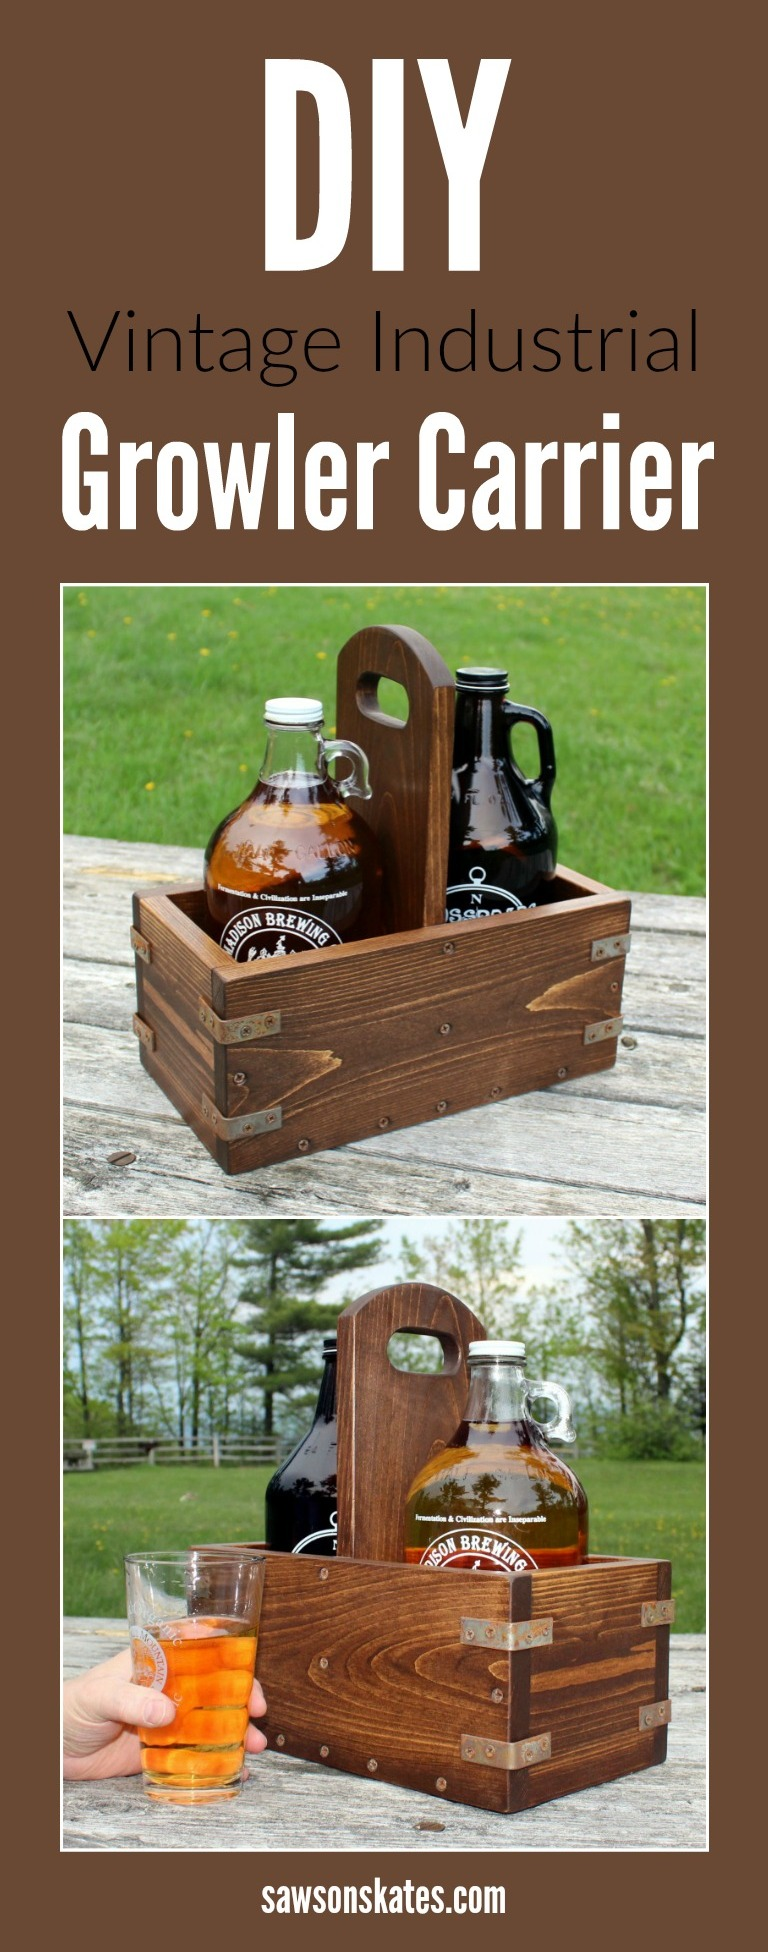 If you're a craft beer fan than you need a growler tote! You can make your own DIY wooden growler carrier with these easy to follow plans. The carrier features a dark stain, aged metal corner brackets and drain holes in the bottom.